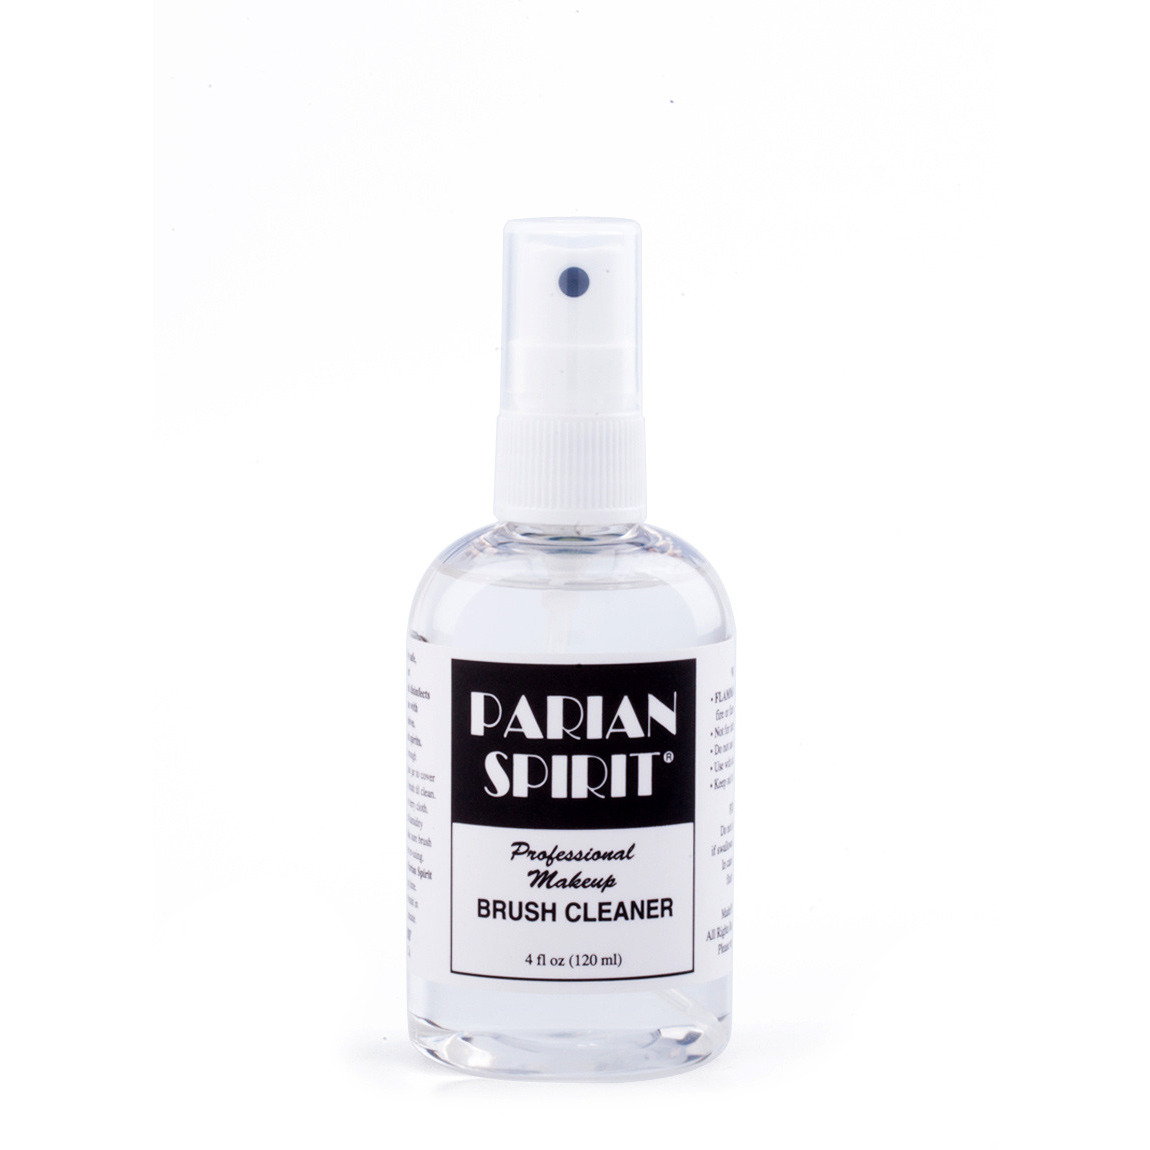 Parian Spirit Professional Makeup Brush Cleaner 4 oz. product swatch.